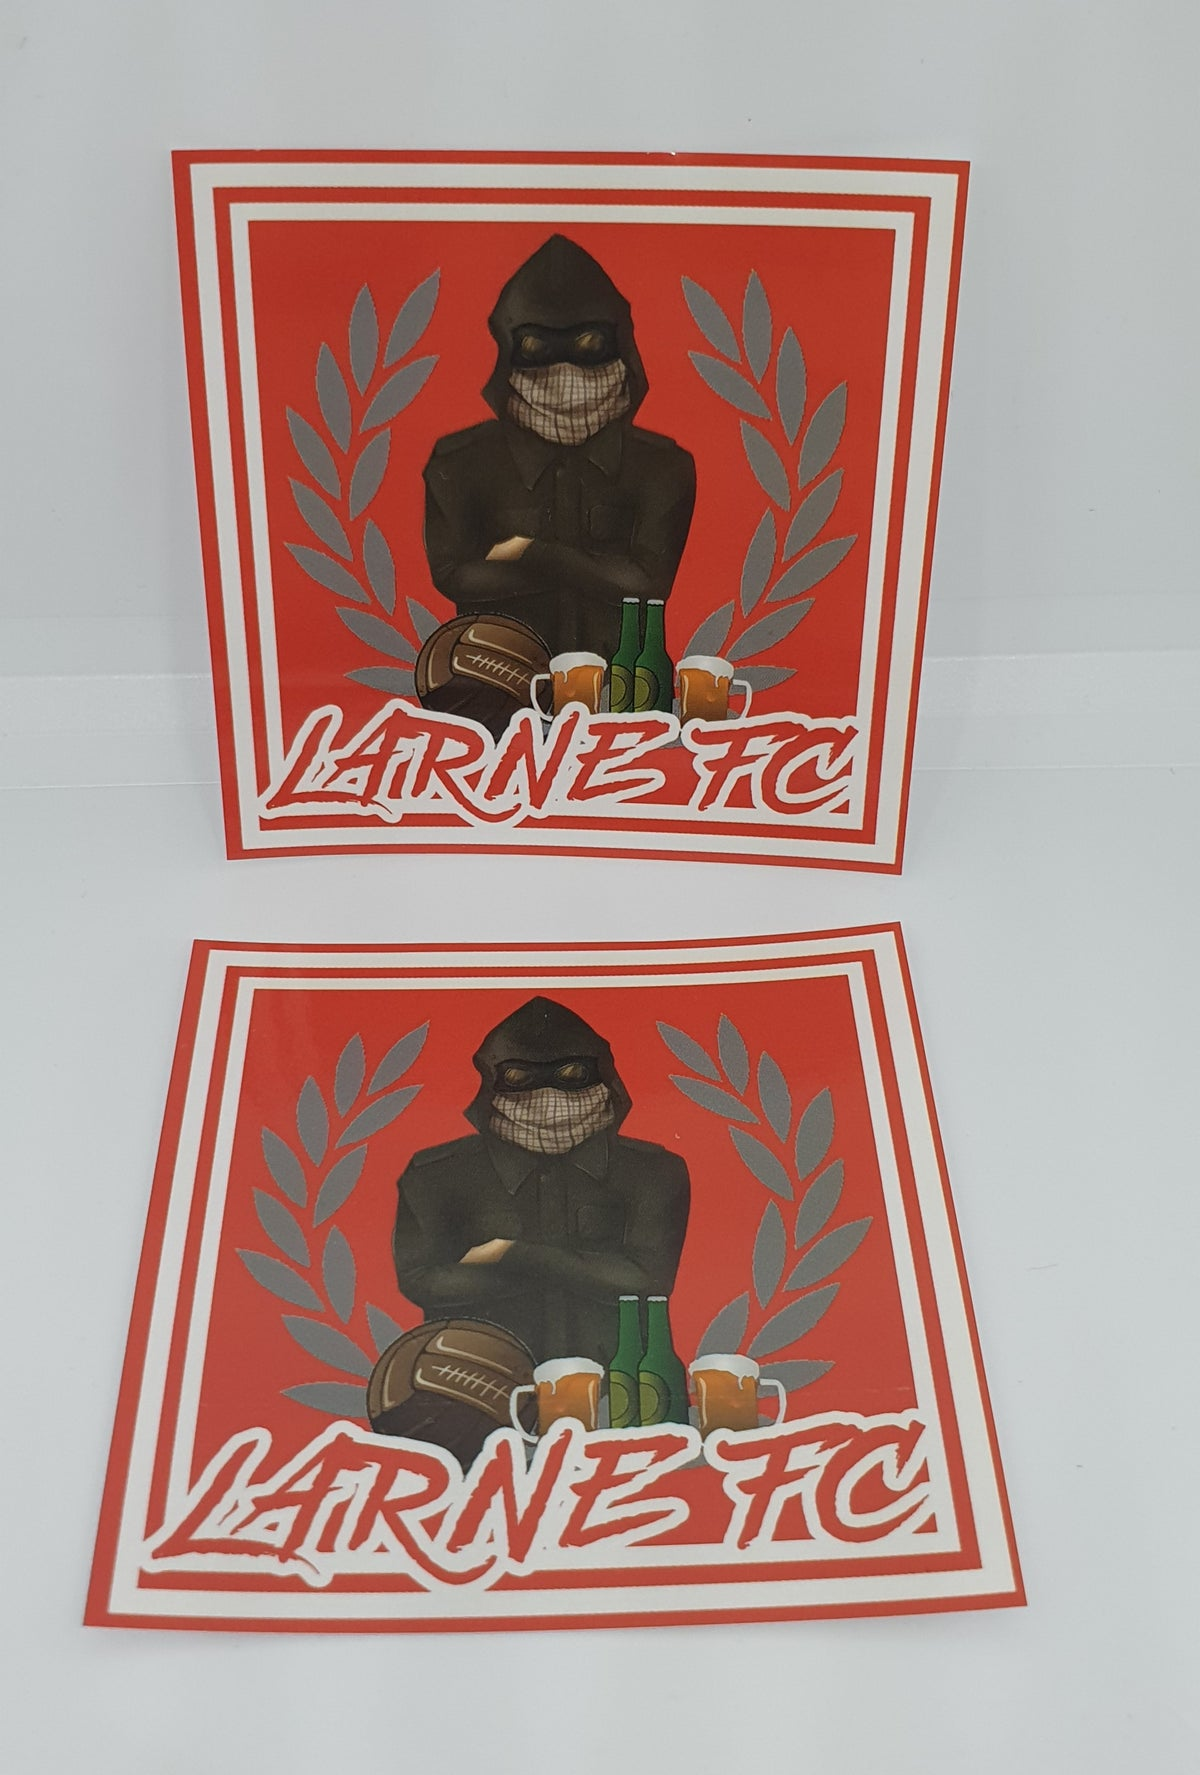 Pack of 25 7x7cm Larne Football and Beer football/ultras stickers.